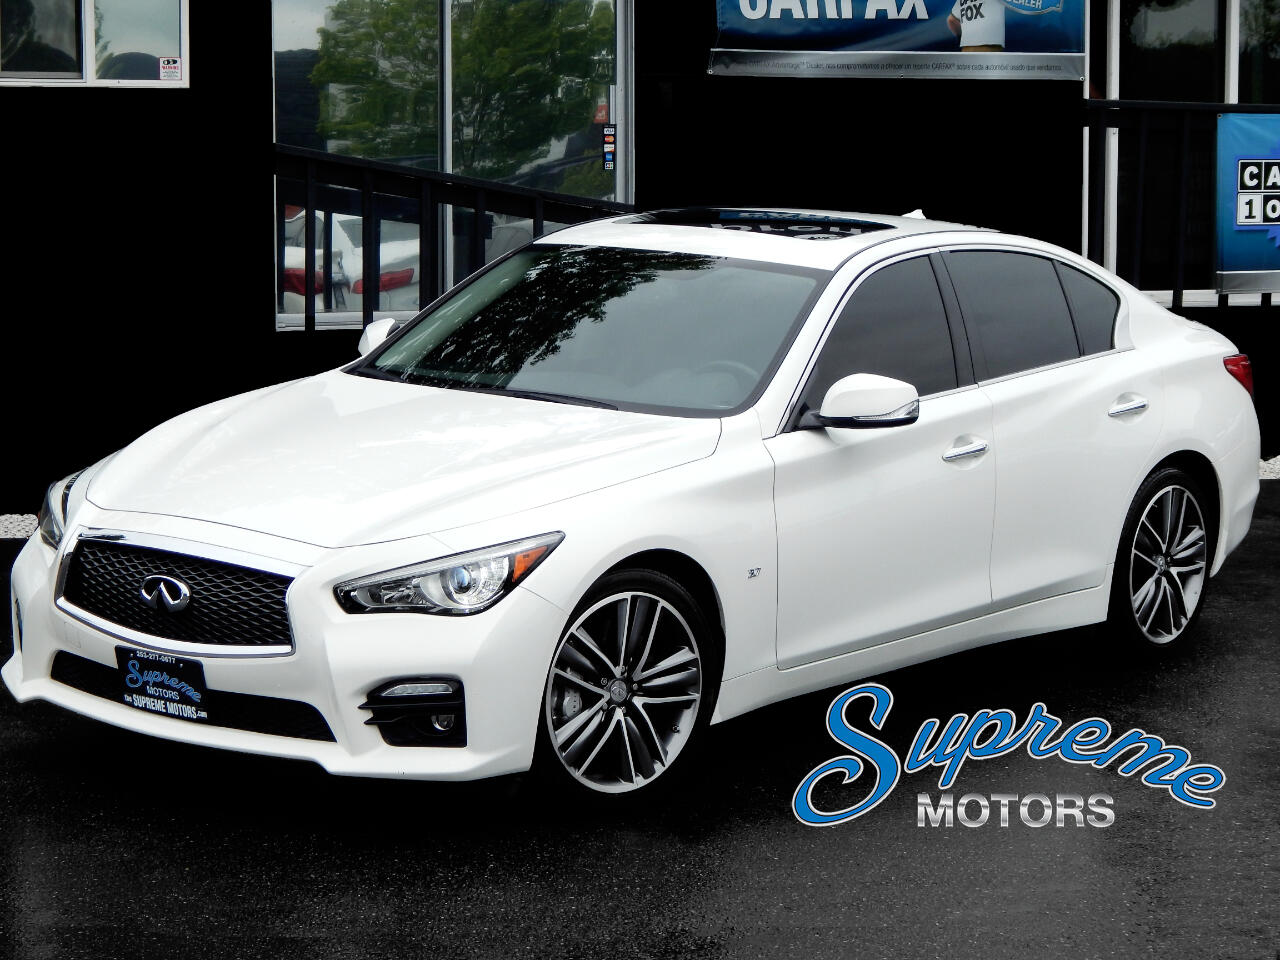 2015 Infiniti Q50 Sport Package, WHITE on BLACK, clean Carfax + LOAD